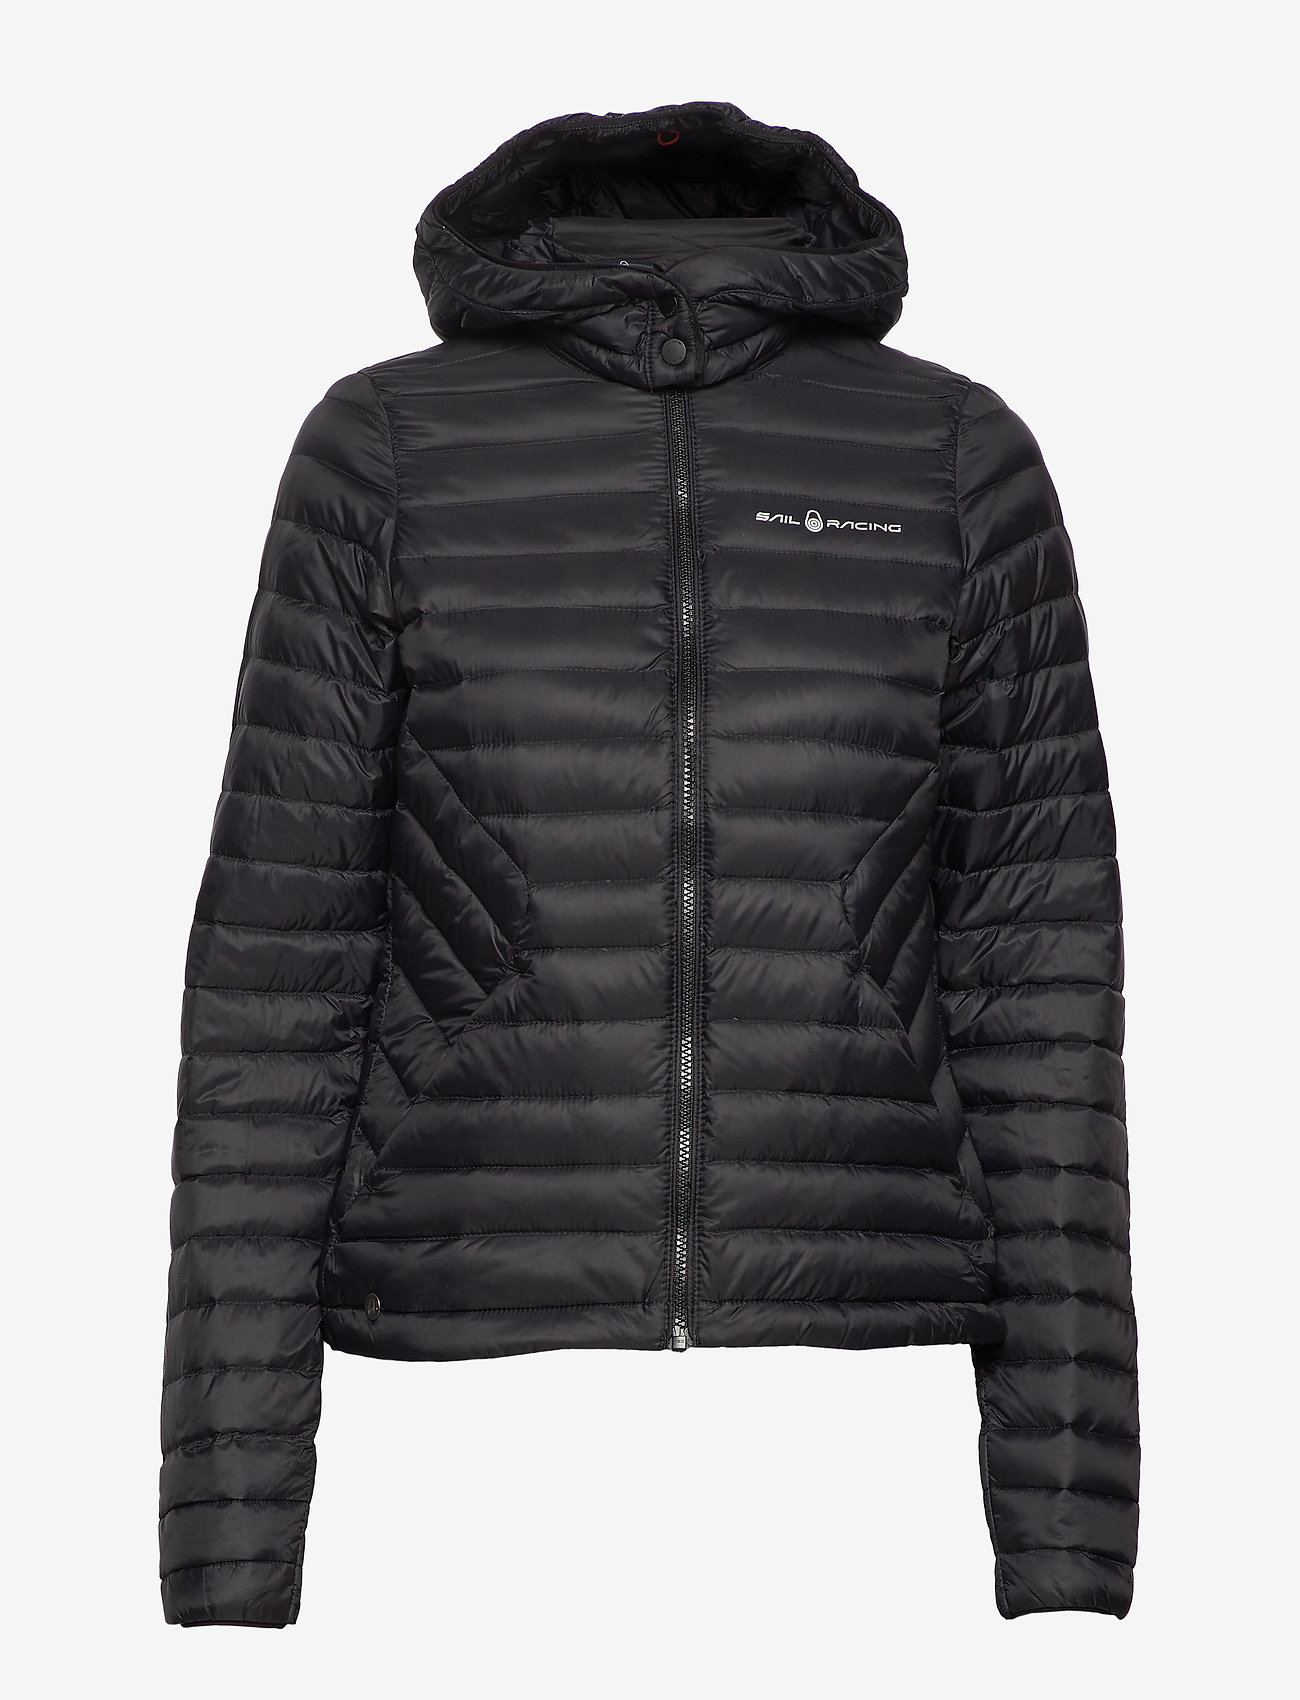 Sail Racing - W LINK DOWN JACKET - sports jackets - carbon - 1